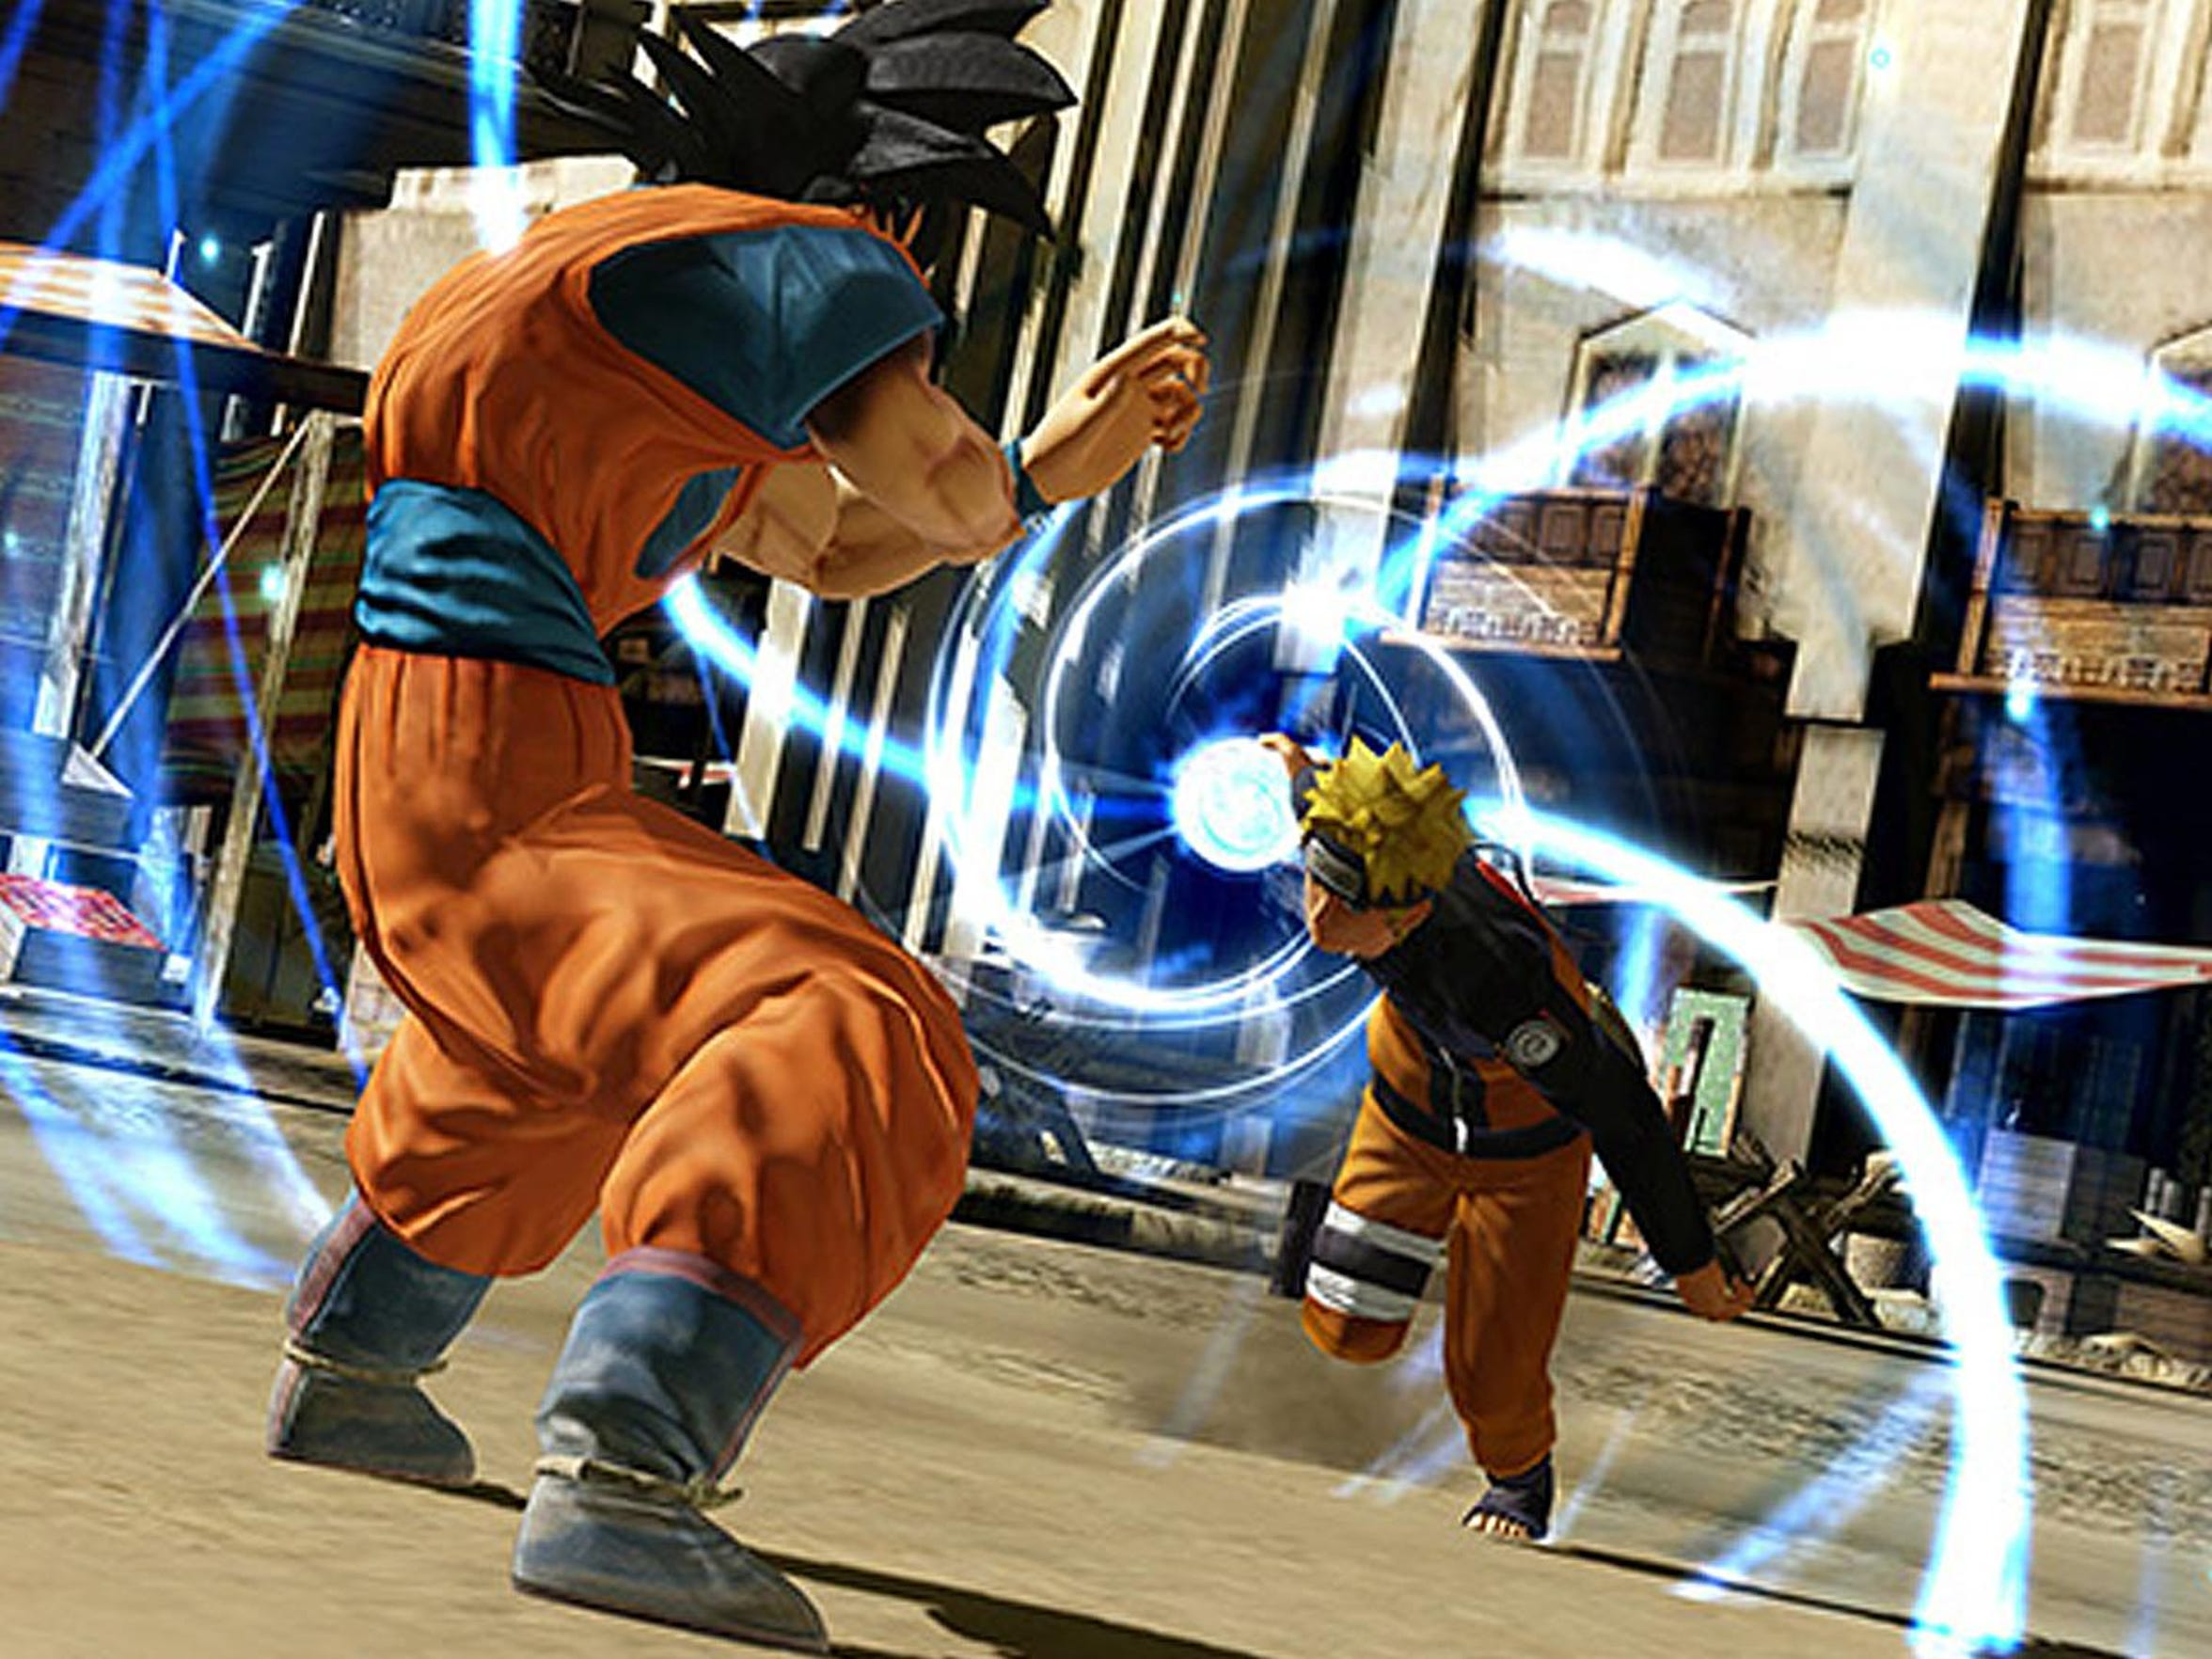 J-Stars Victory VS+ features 3D brawling between characters